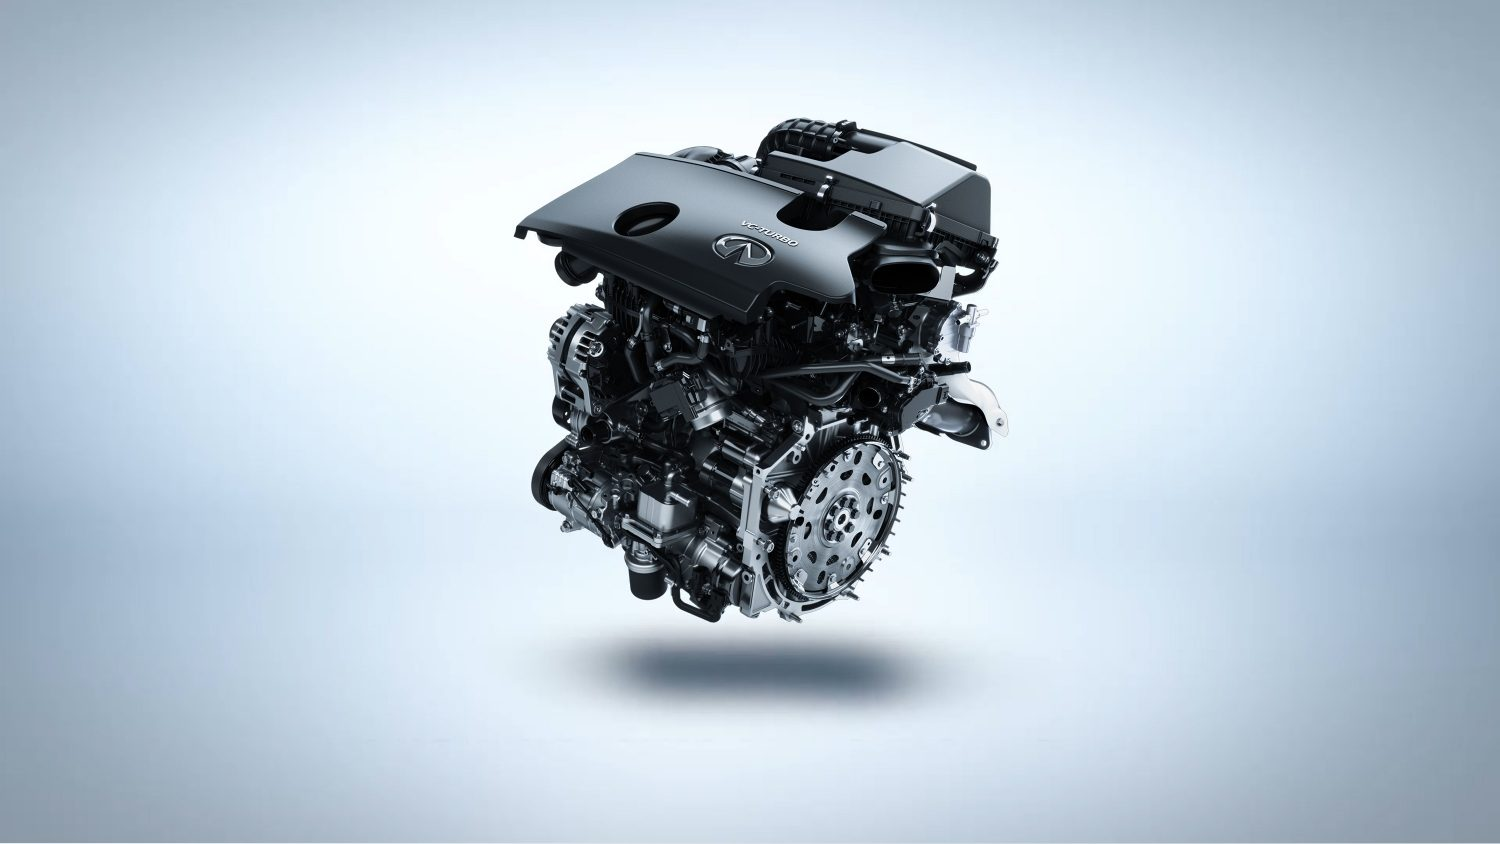 Infiniti VC Turbo Engine | INFINITI